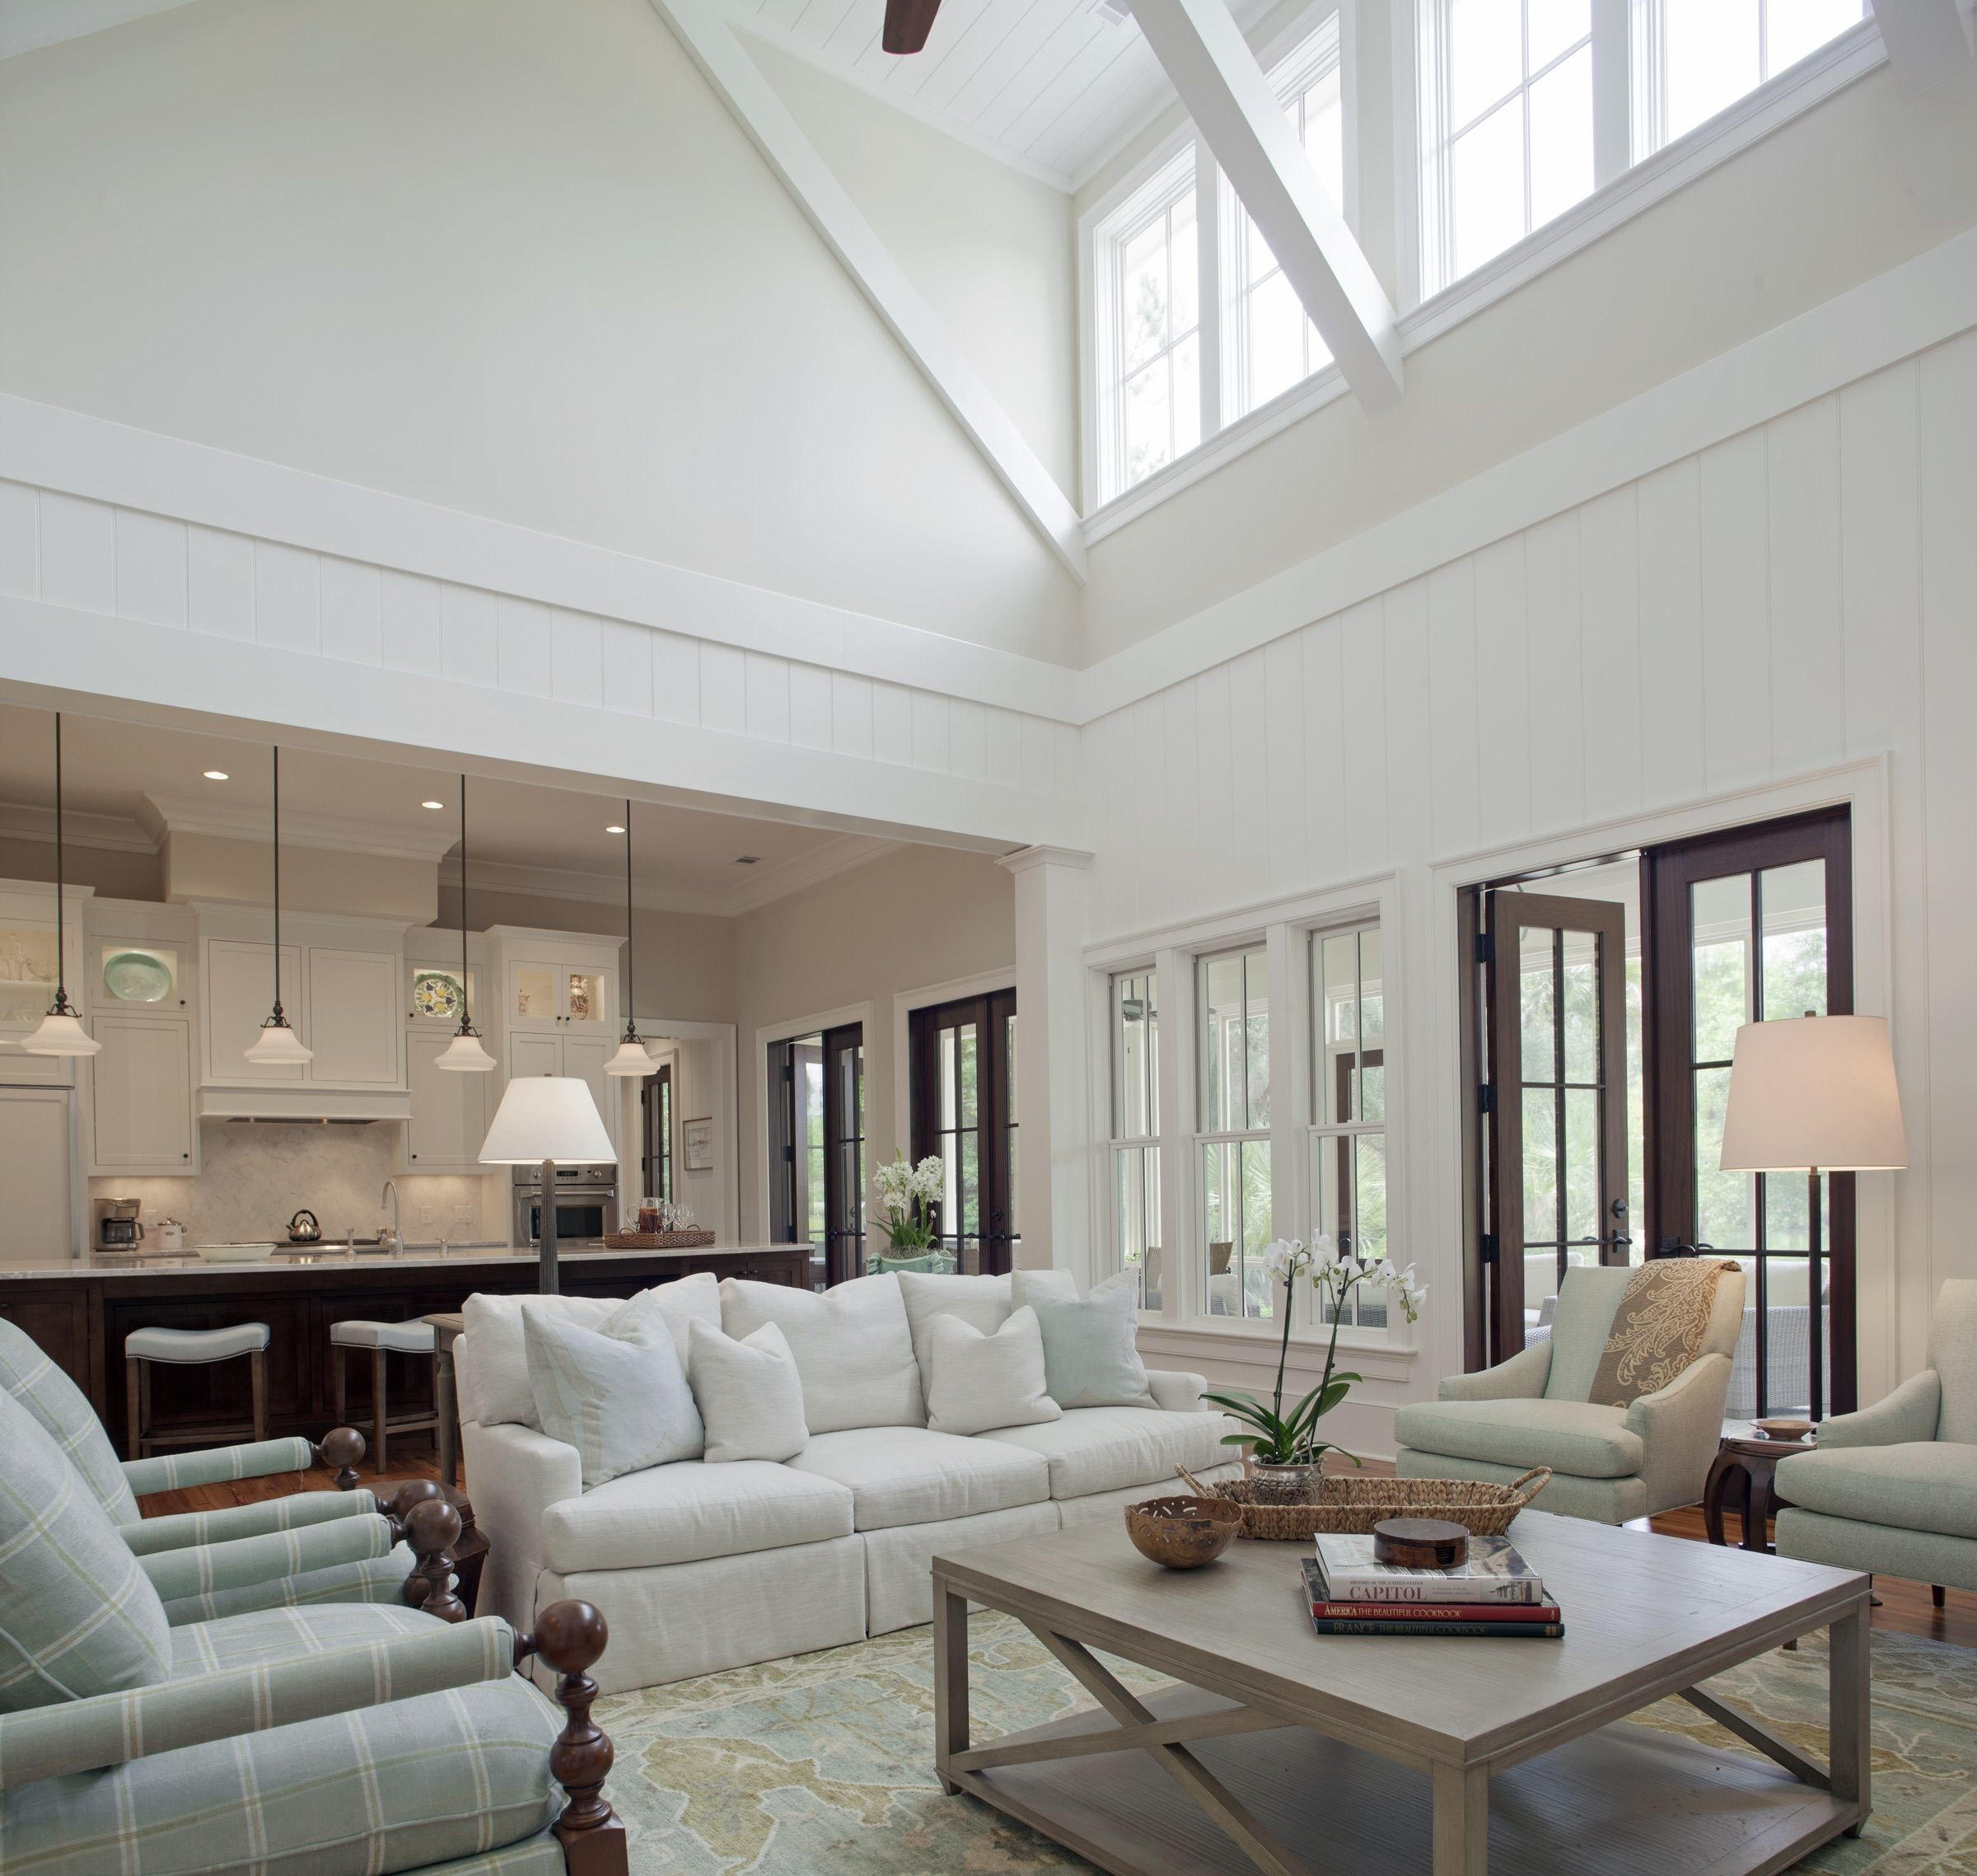 Palmetto Bluff Living Room: Pearce Scott Architects | New lake house ...